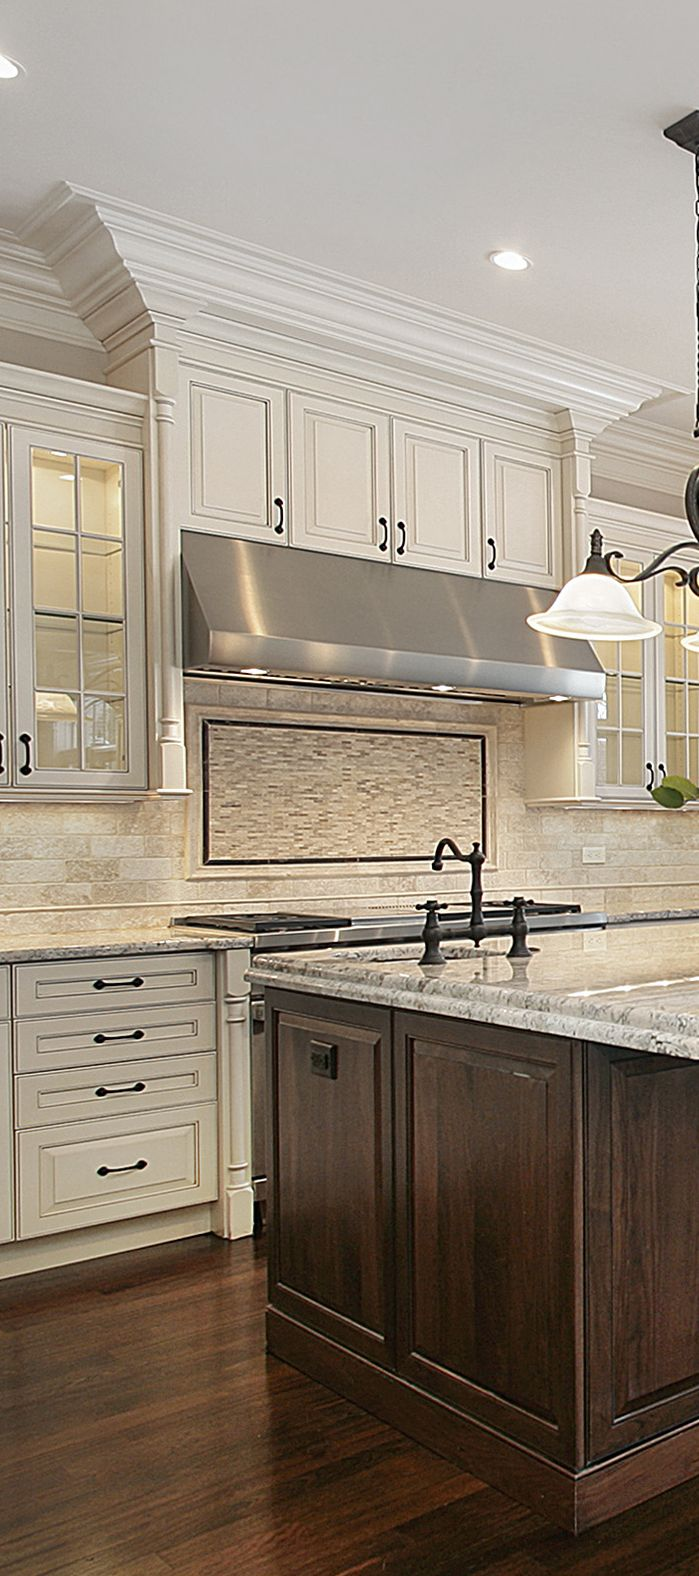 Off White Kitchen Cabinets Kitchens Only Love The Large Island Contrast Tile Design Behind Cook Cabinet Ideas Come Best When You Have Consulted All Possible Avenues